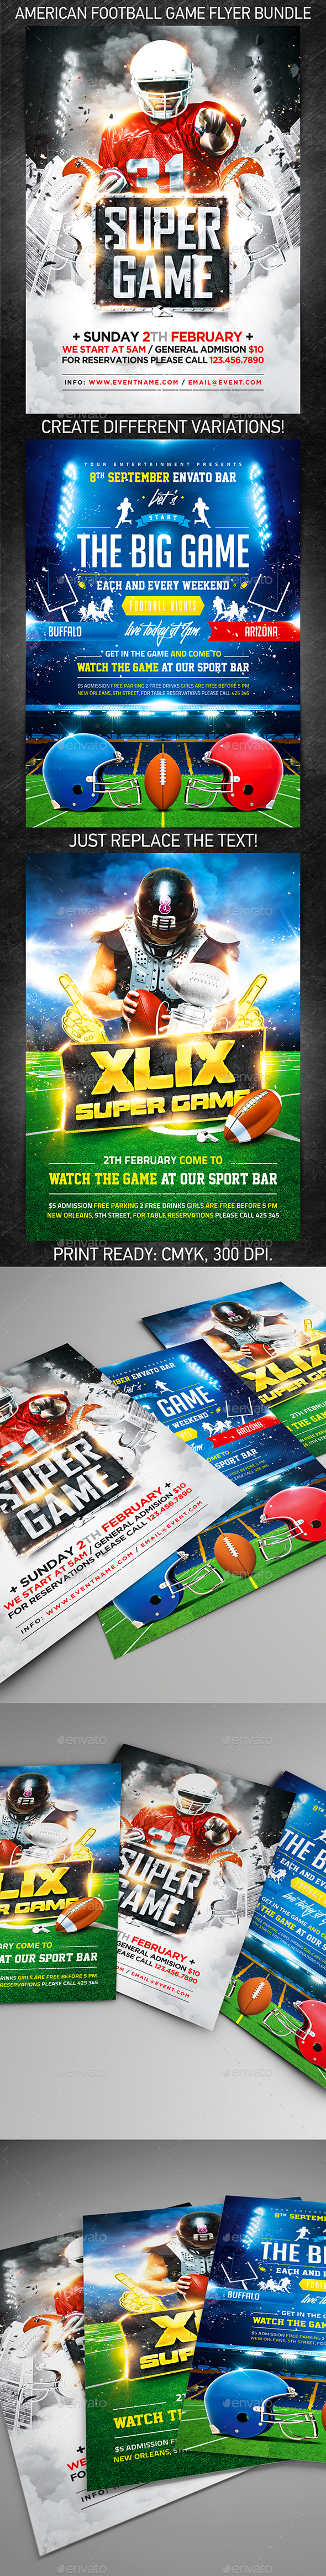 American Football Game Flyer Bundle - Flyers Print Templates